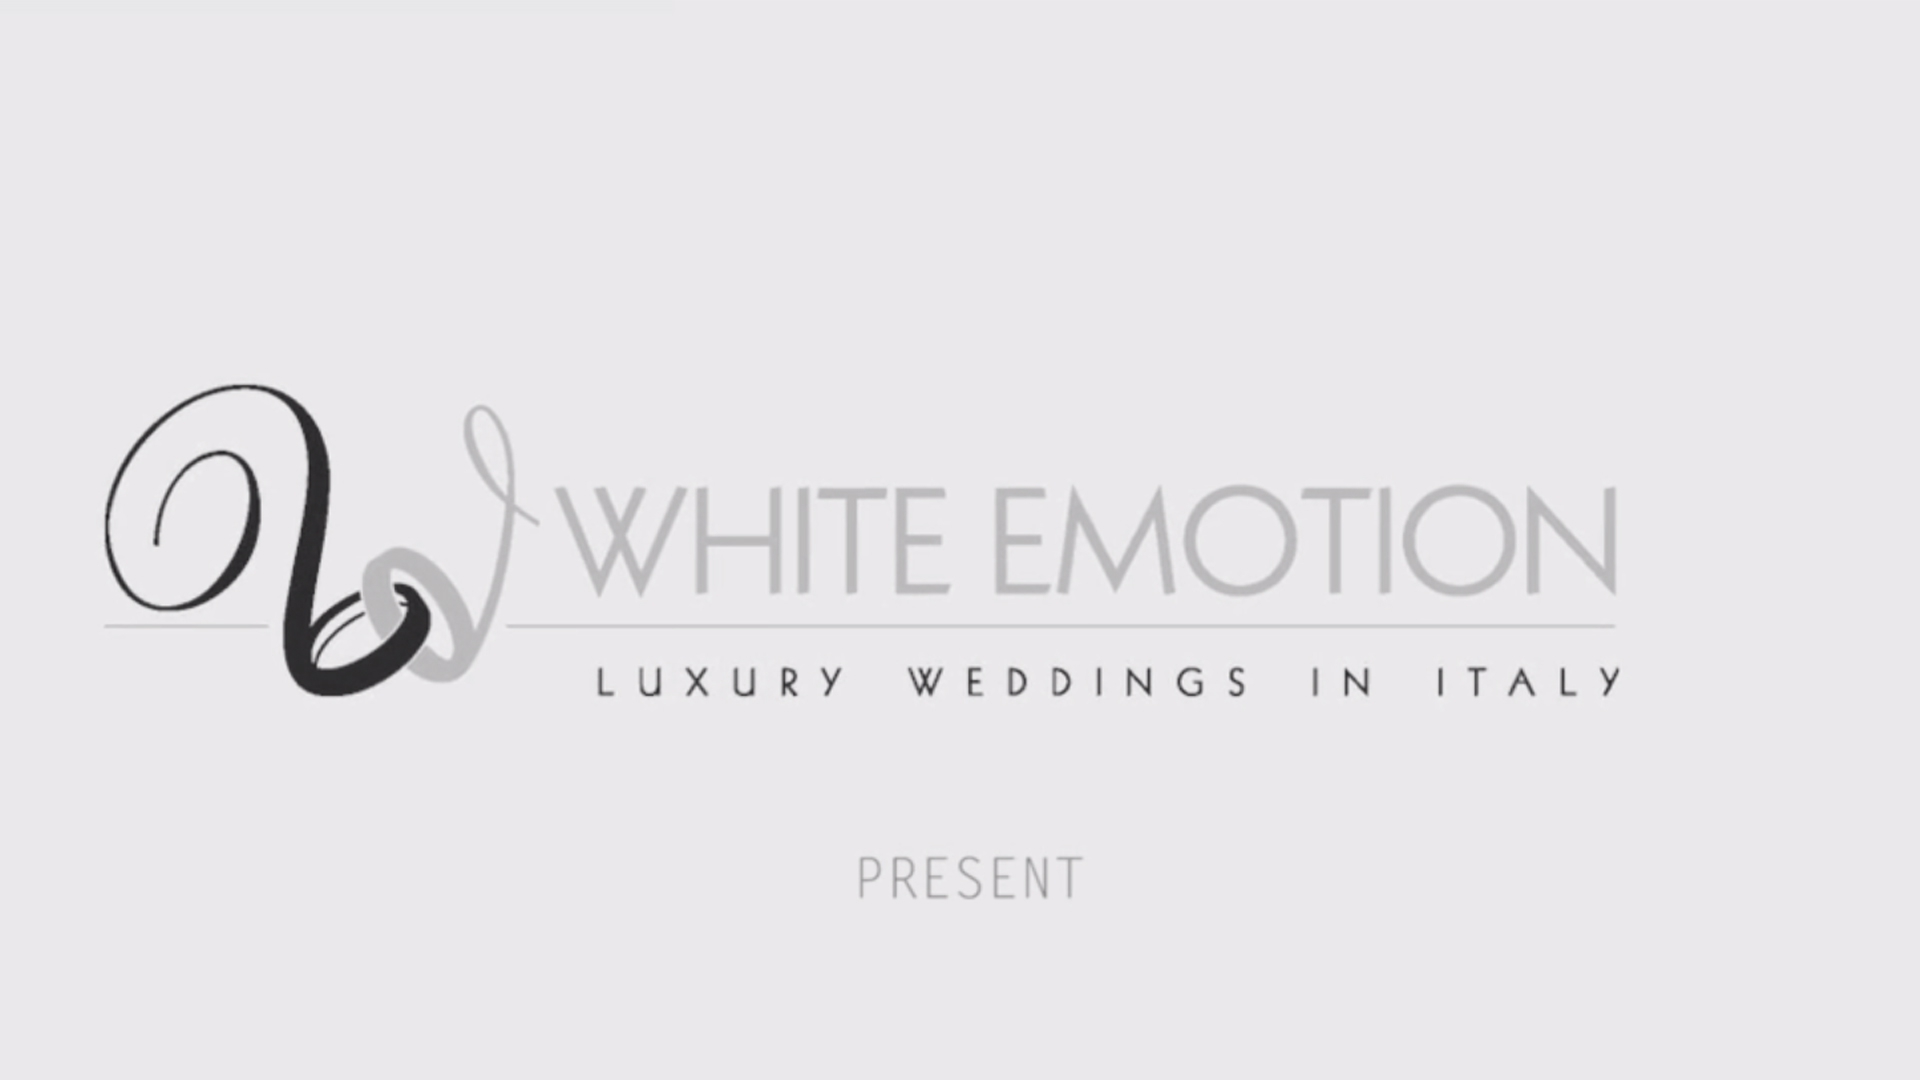 Luigi Cantu >> Extract of the best wedding videos made with White Emotion   Nitrato d'argento - Agno3